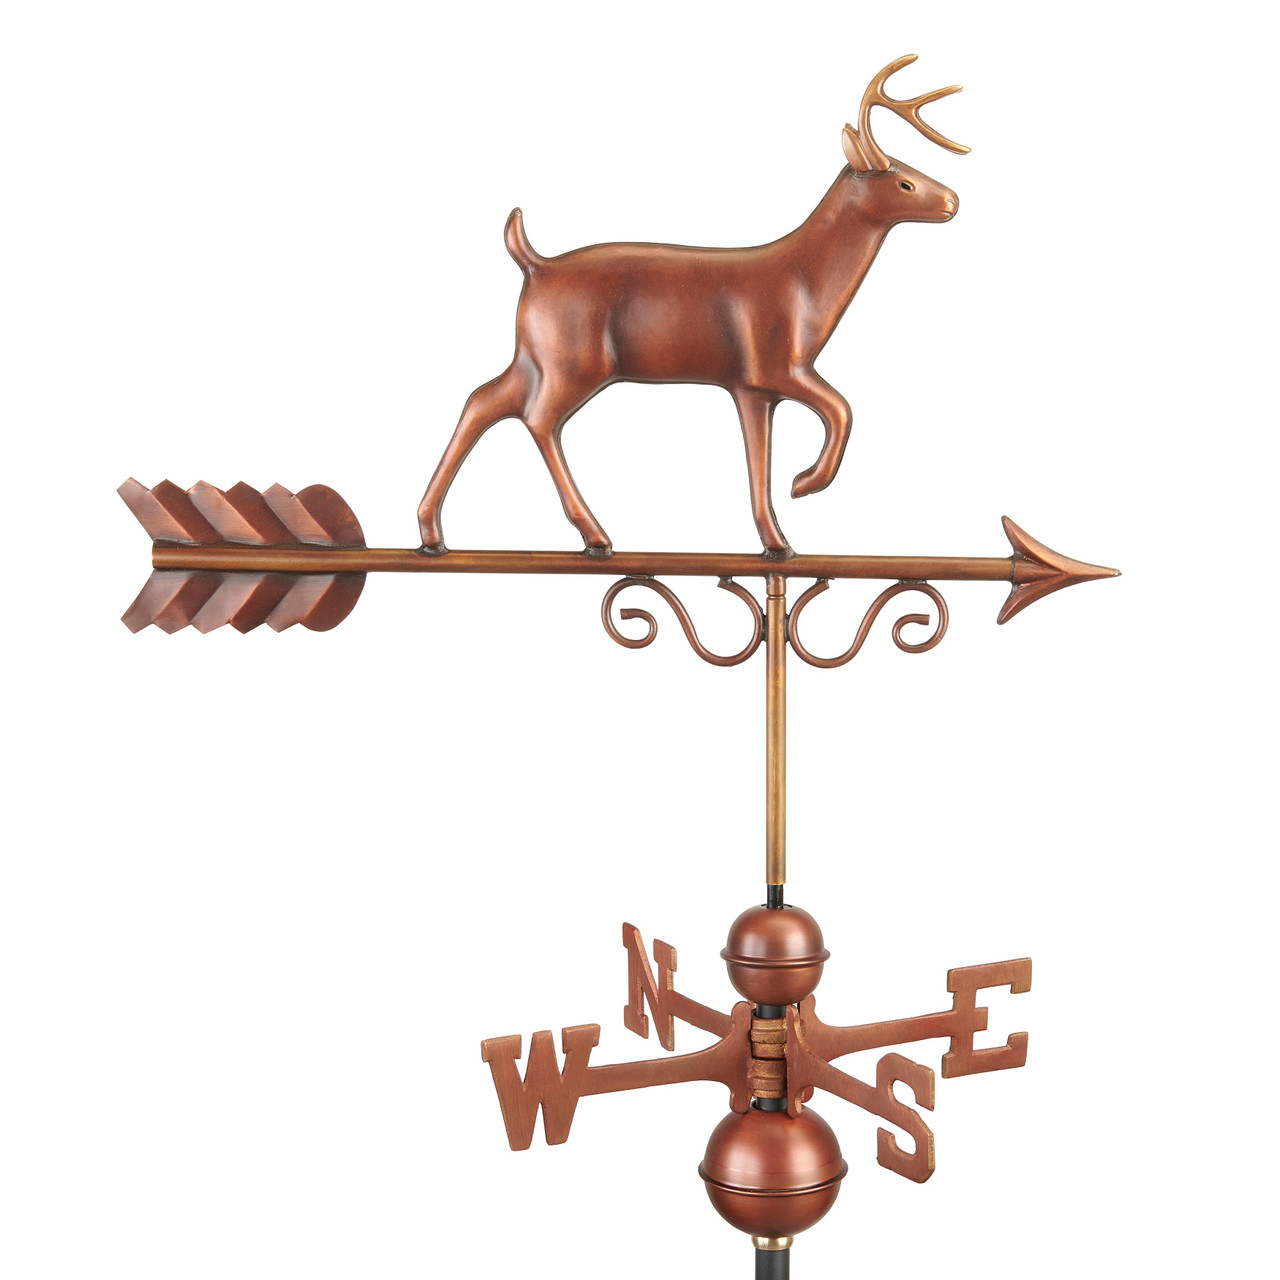 Proud Buck Weathervane - Pure Copper Hand Finished Bronze Patina by Good Directions